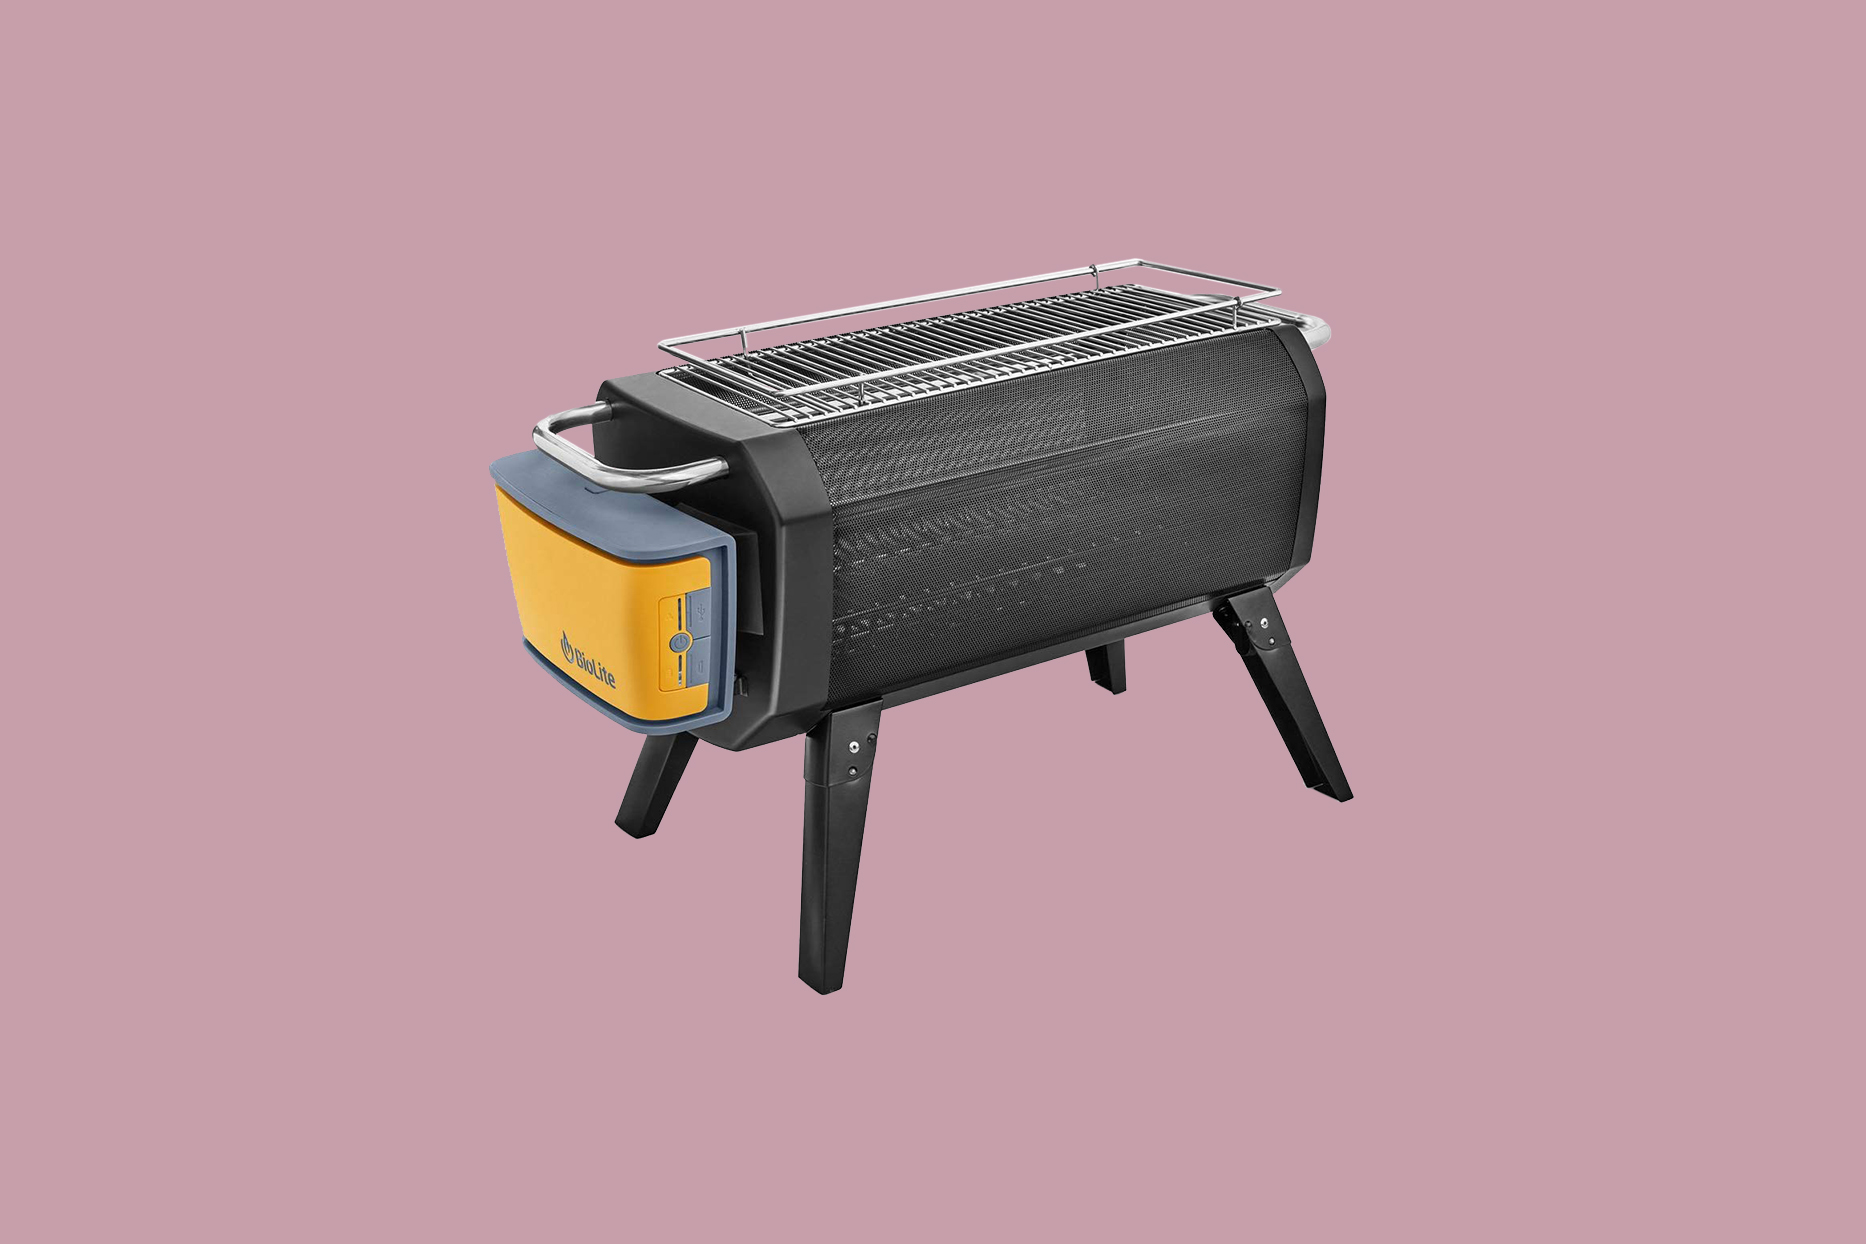 BioLite Outdoor Smokeless Fire Pit Grill